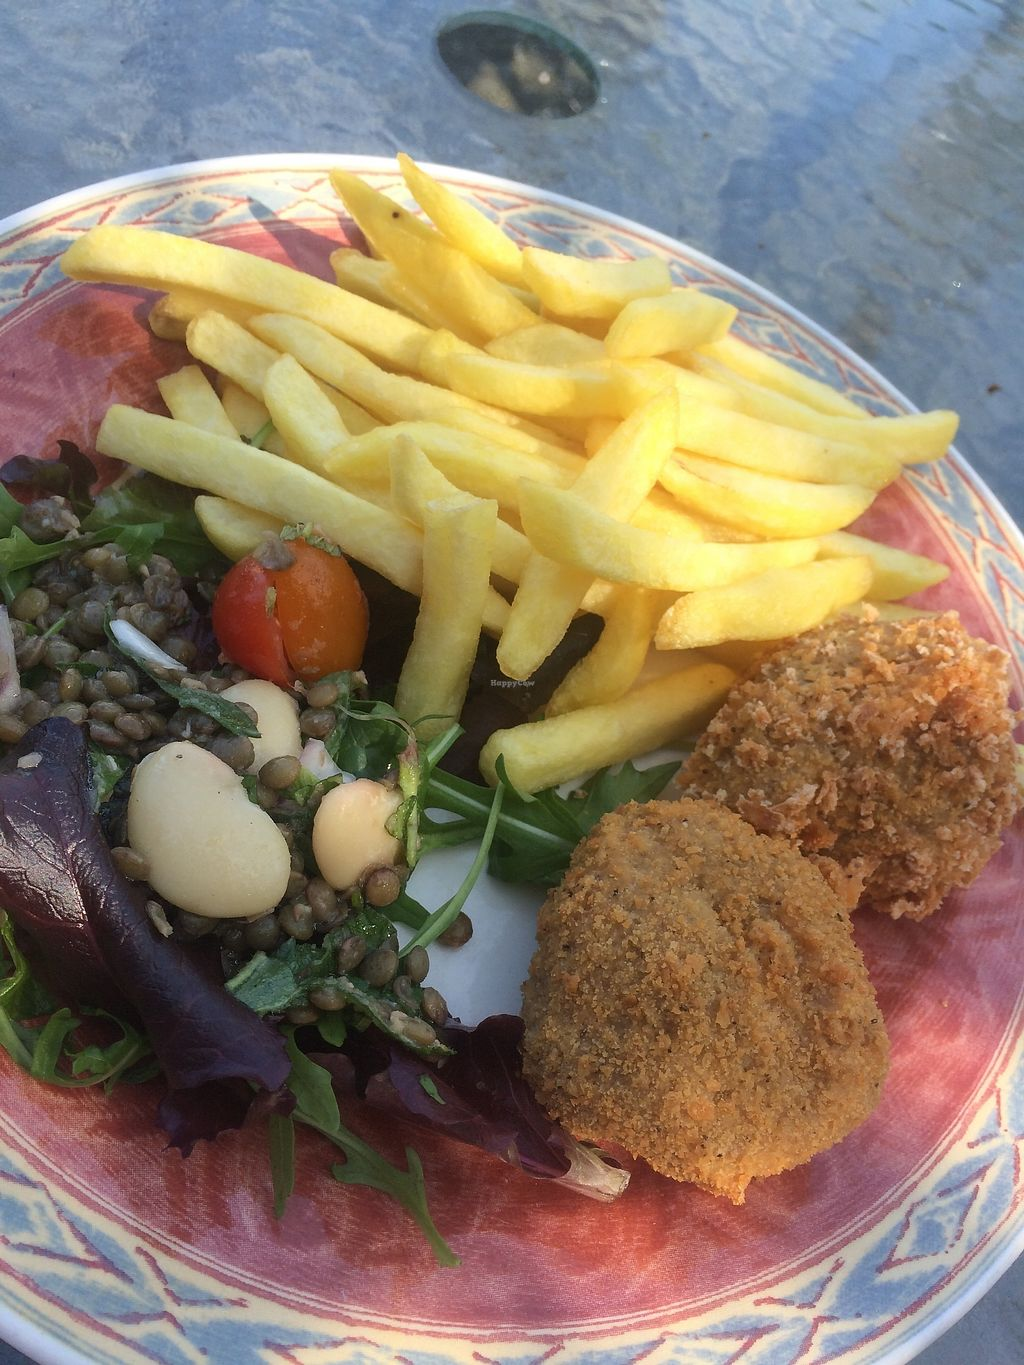 """Photo of The Retreat Animal Rescue Farm Sanctuary and Cafe  by <a href=""""/members/profile/RubyVegan"""">RubyVegan</a> <br/>seitan nuggets, chips and salad <br/> June 26, 2017  - <a href='/contact/abuse/image/93600/273671'>Report</a>"""